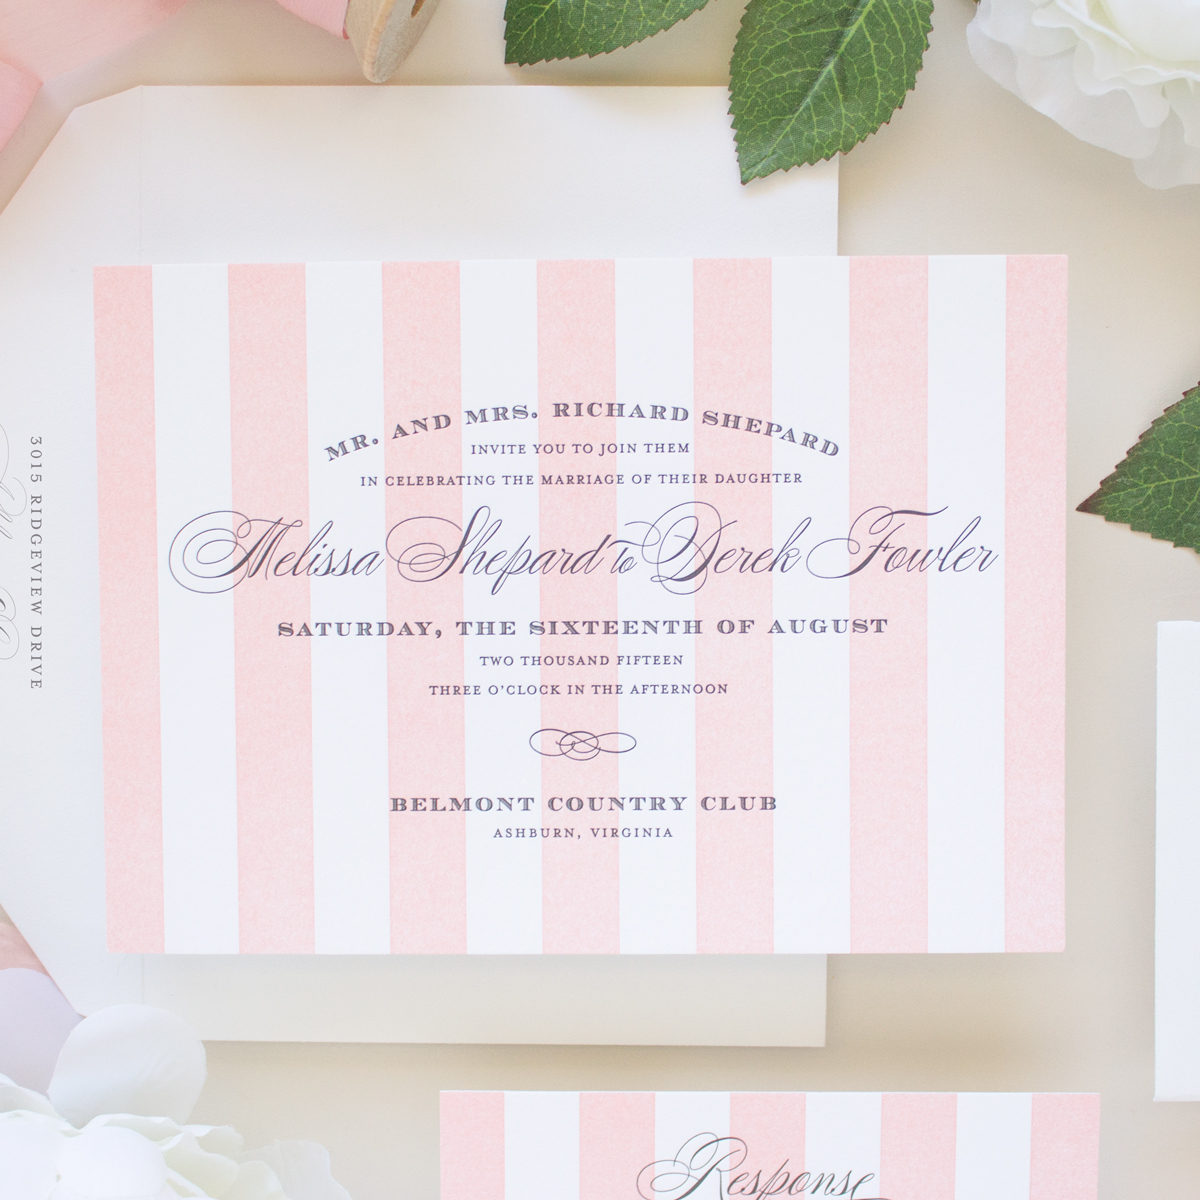 striped letterpress invitations